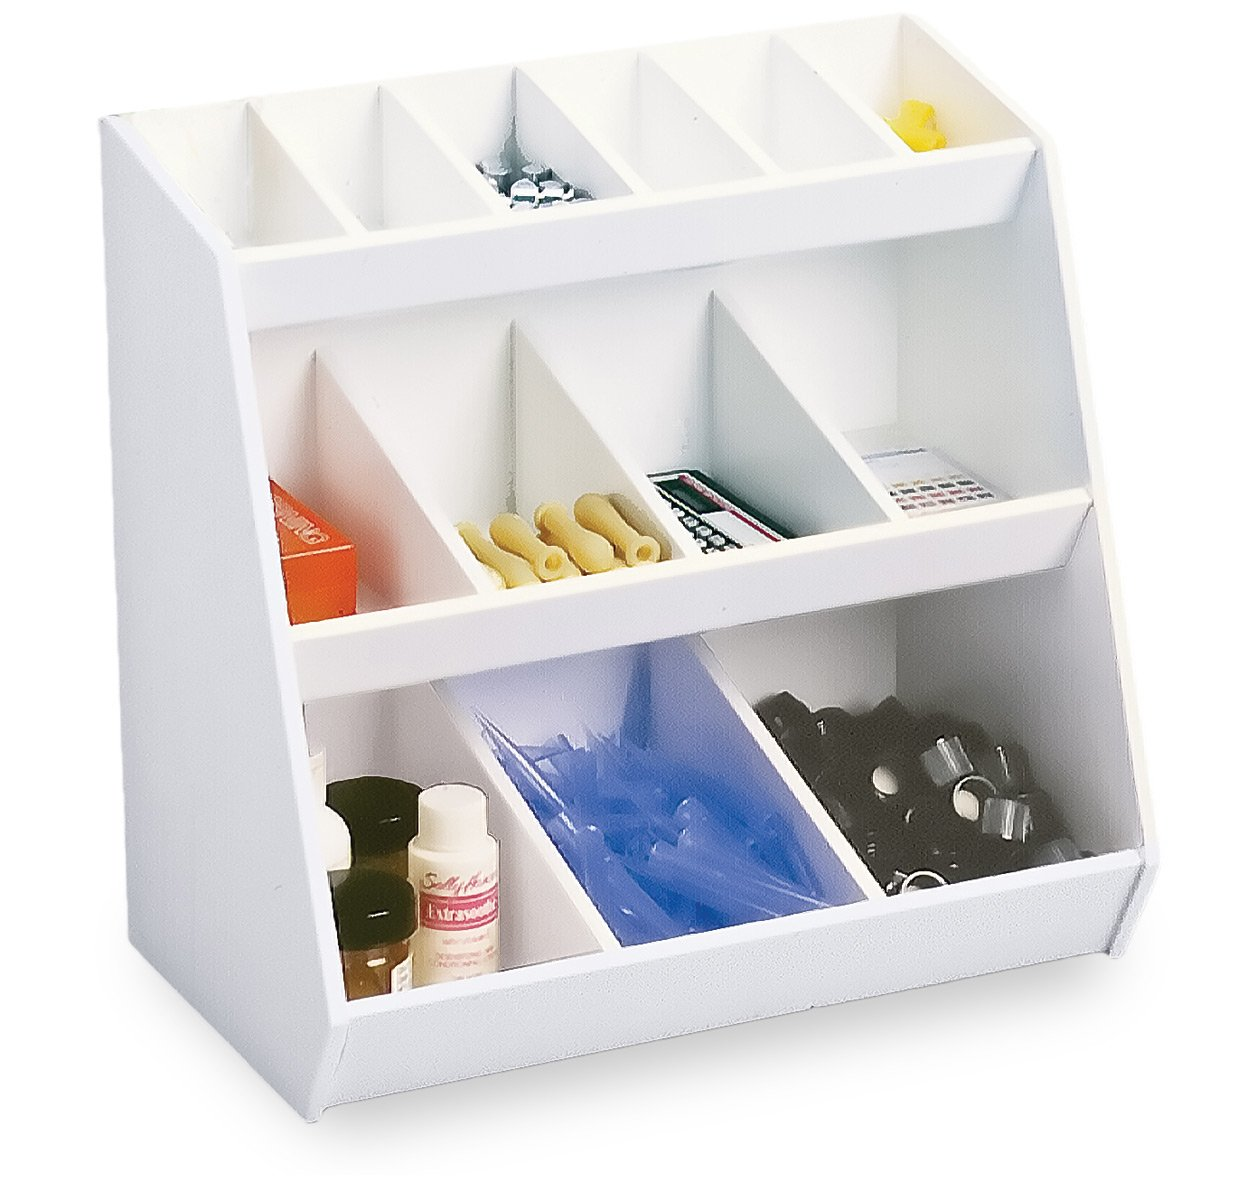 TrippNT 50147 White PVC Plastic Lab Storage Bin with 13 Fixed Compartments, 12'' Width x 12'' Height x 7.25'' Depth